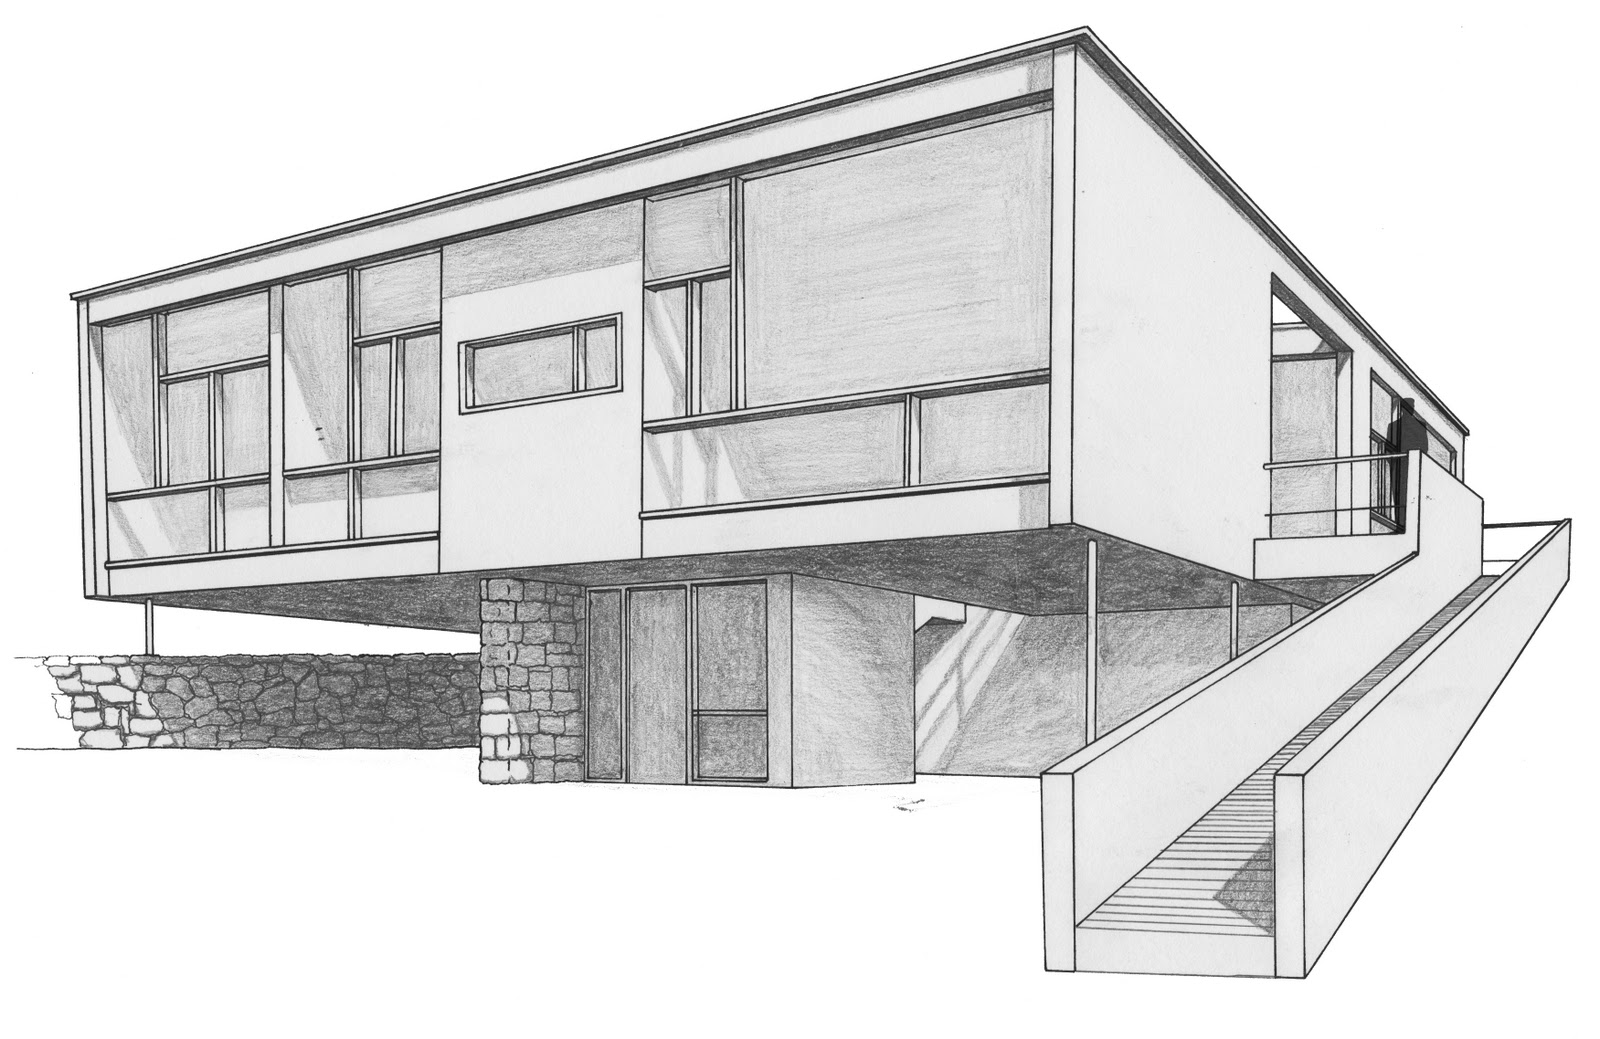 Todd norcott draw it Drawing modern houses